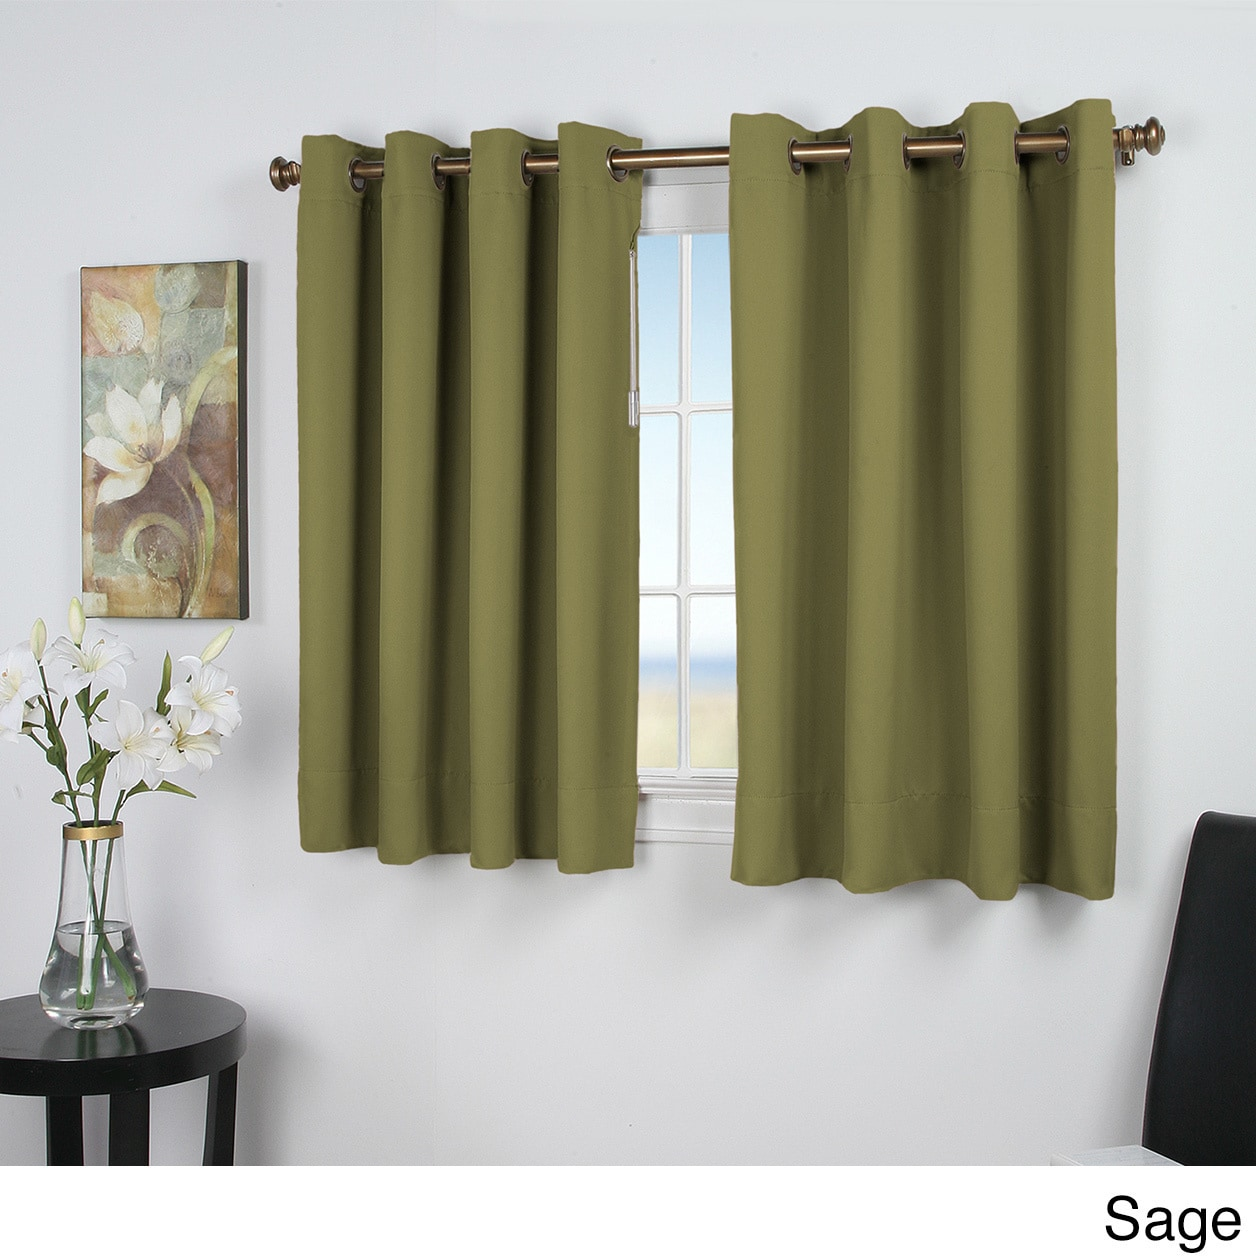 chart length centerfordemocracy thinkpawsitive great picture lengths curtain measuring co of